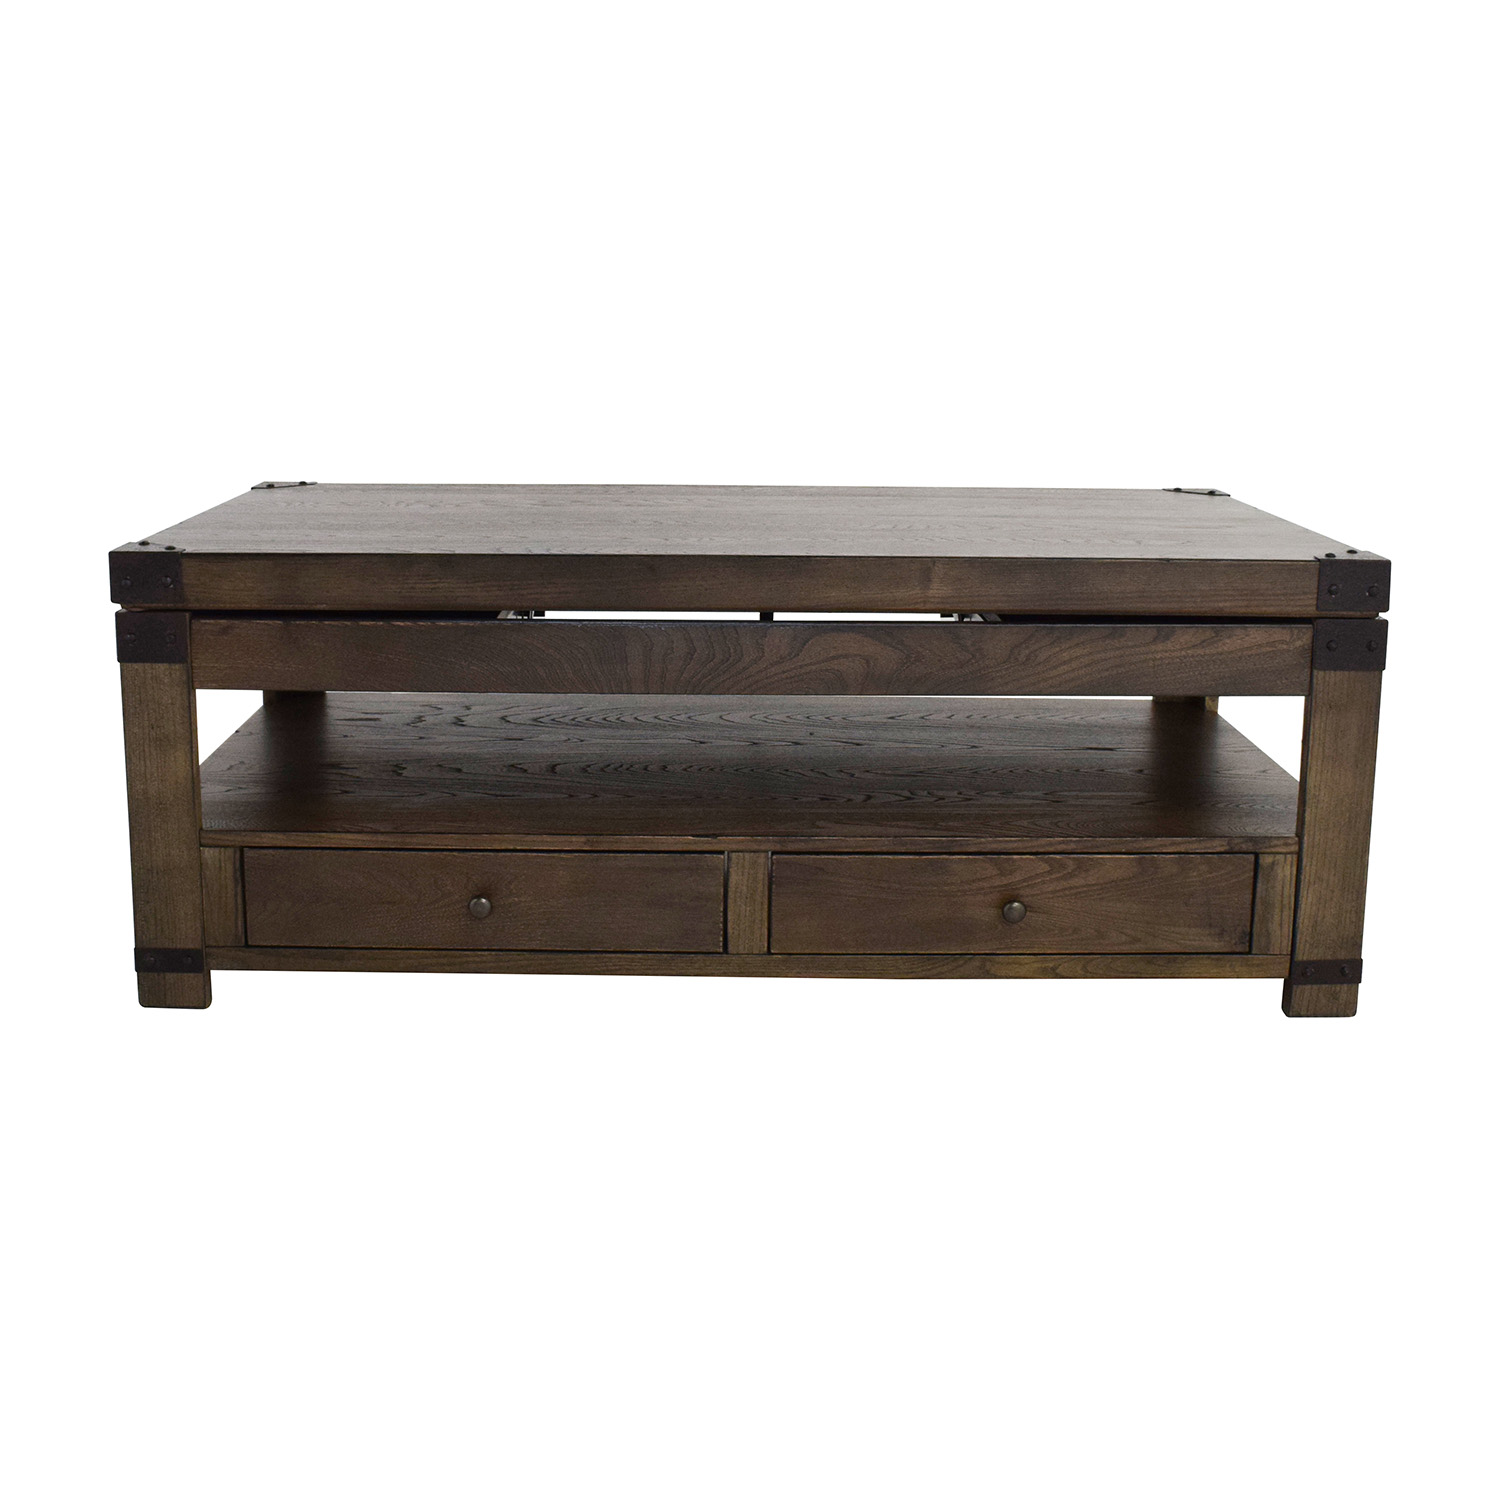 shop Joss and Main Kieran Coffee Table Joss and Main Coffee Tables